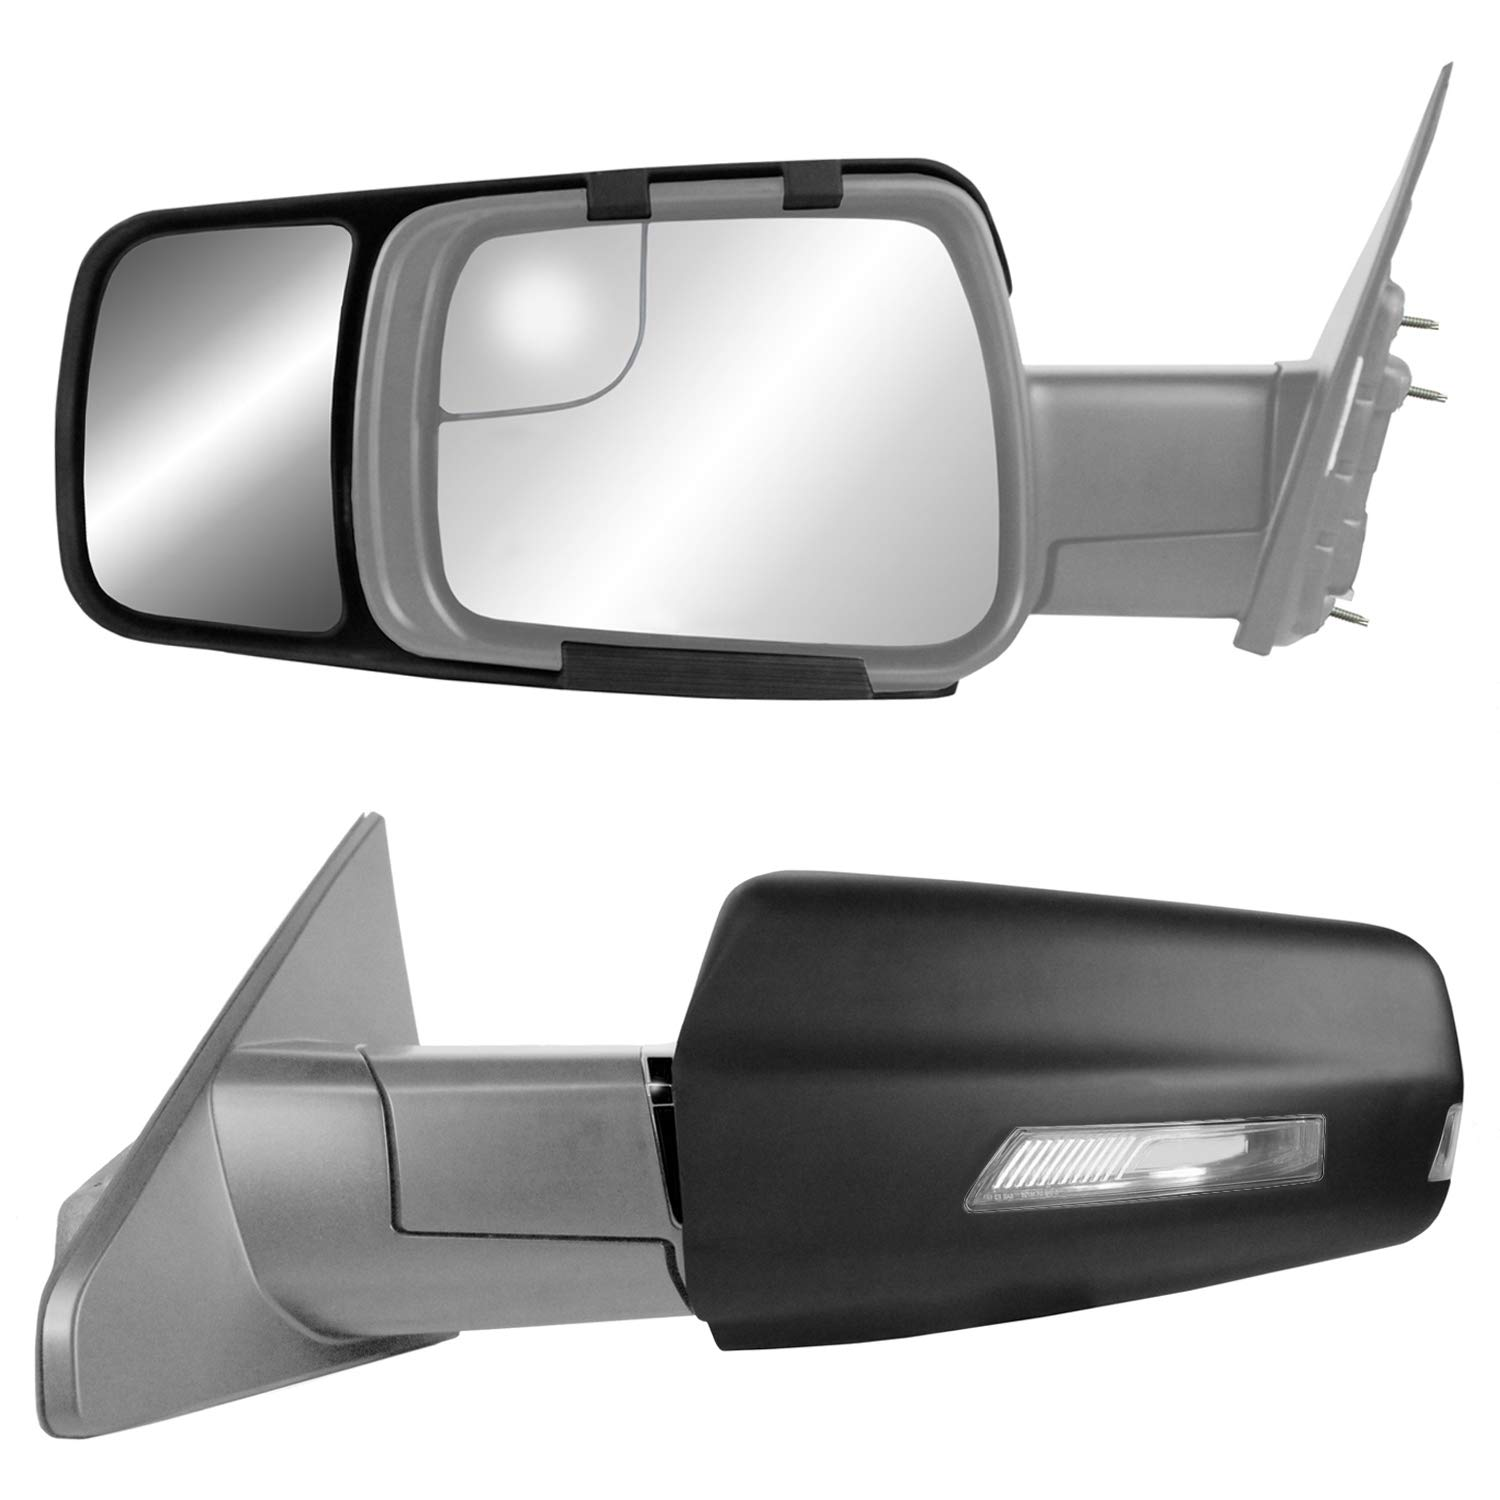 Fit System 80730 Towing Mirrors by Fit System